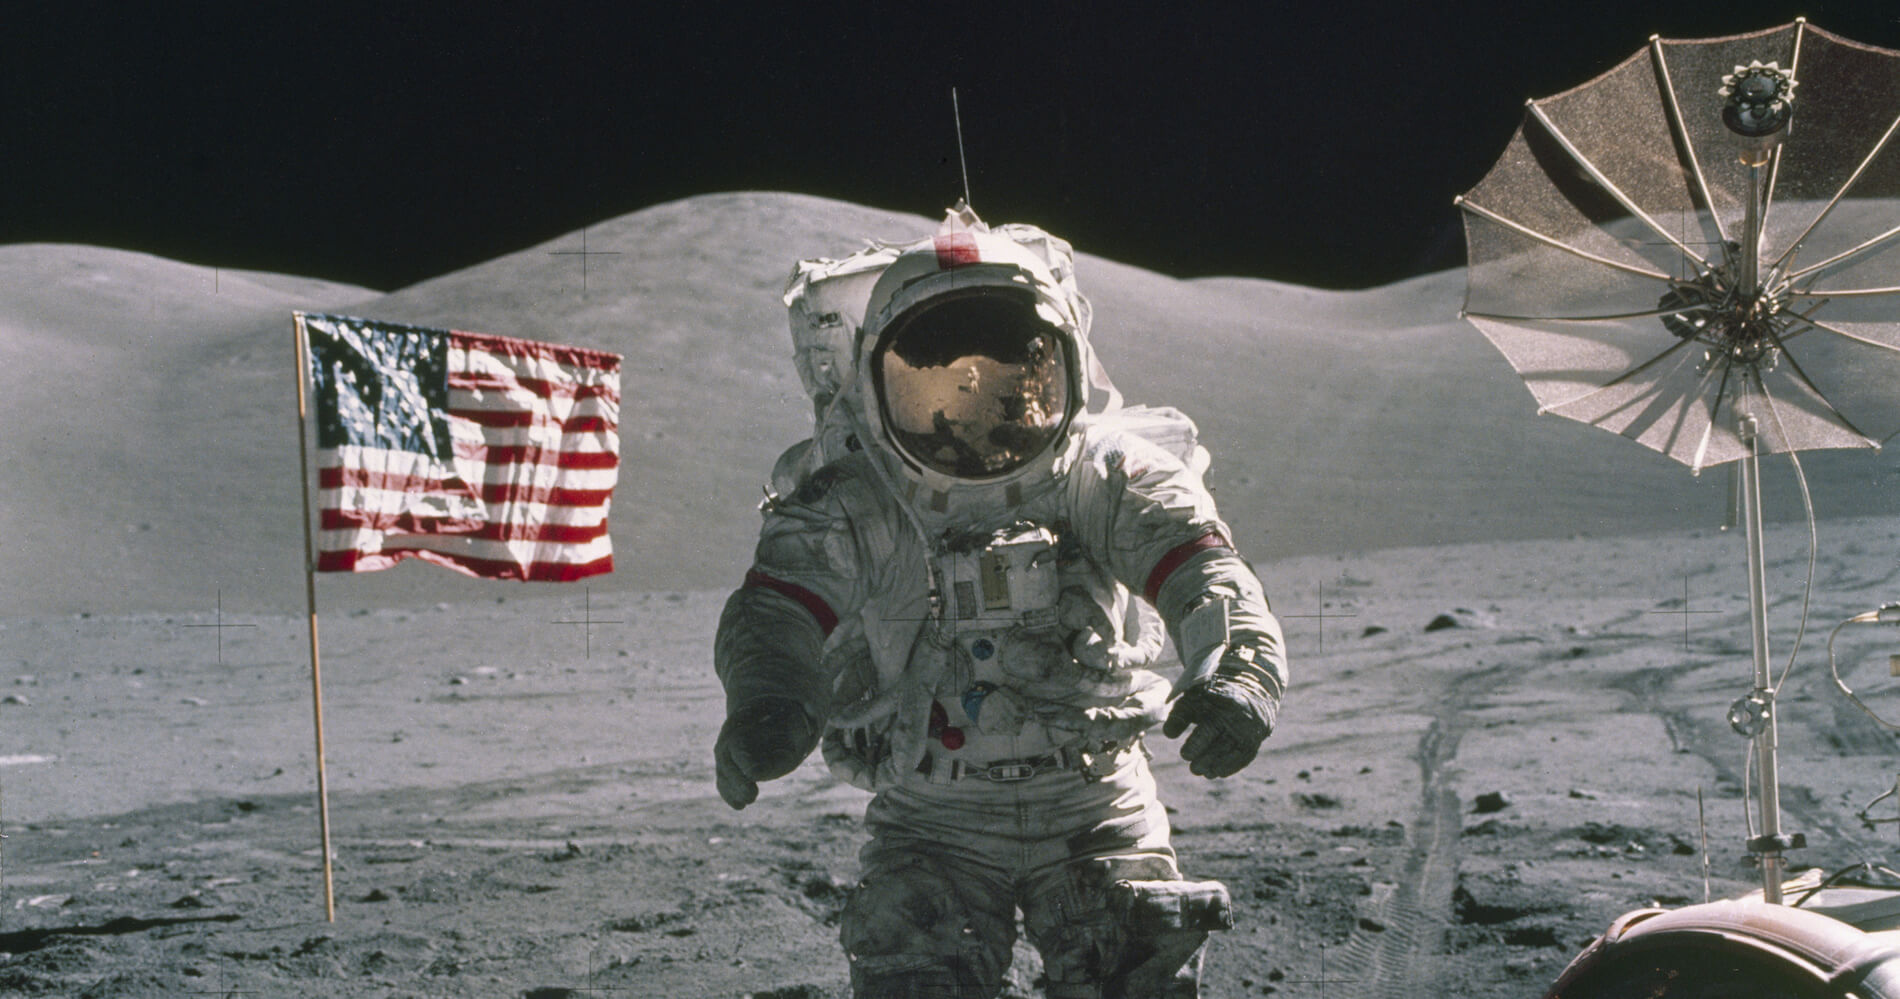 apollo program cost worth retrying space exploration  apollo program cost an investment in space worth retrying